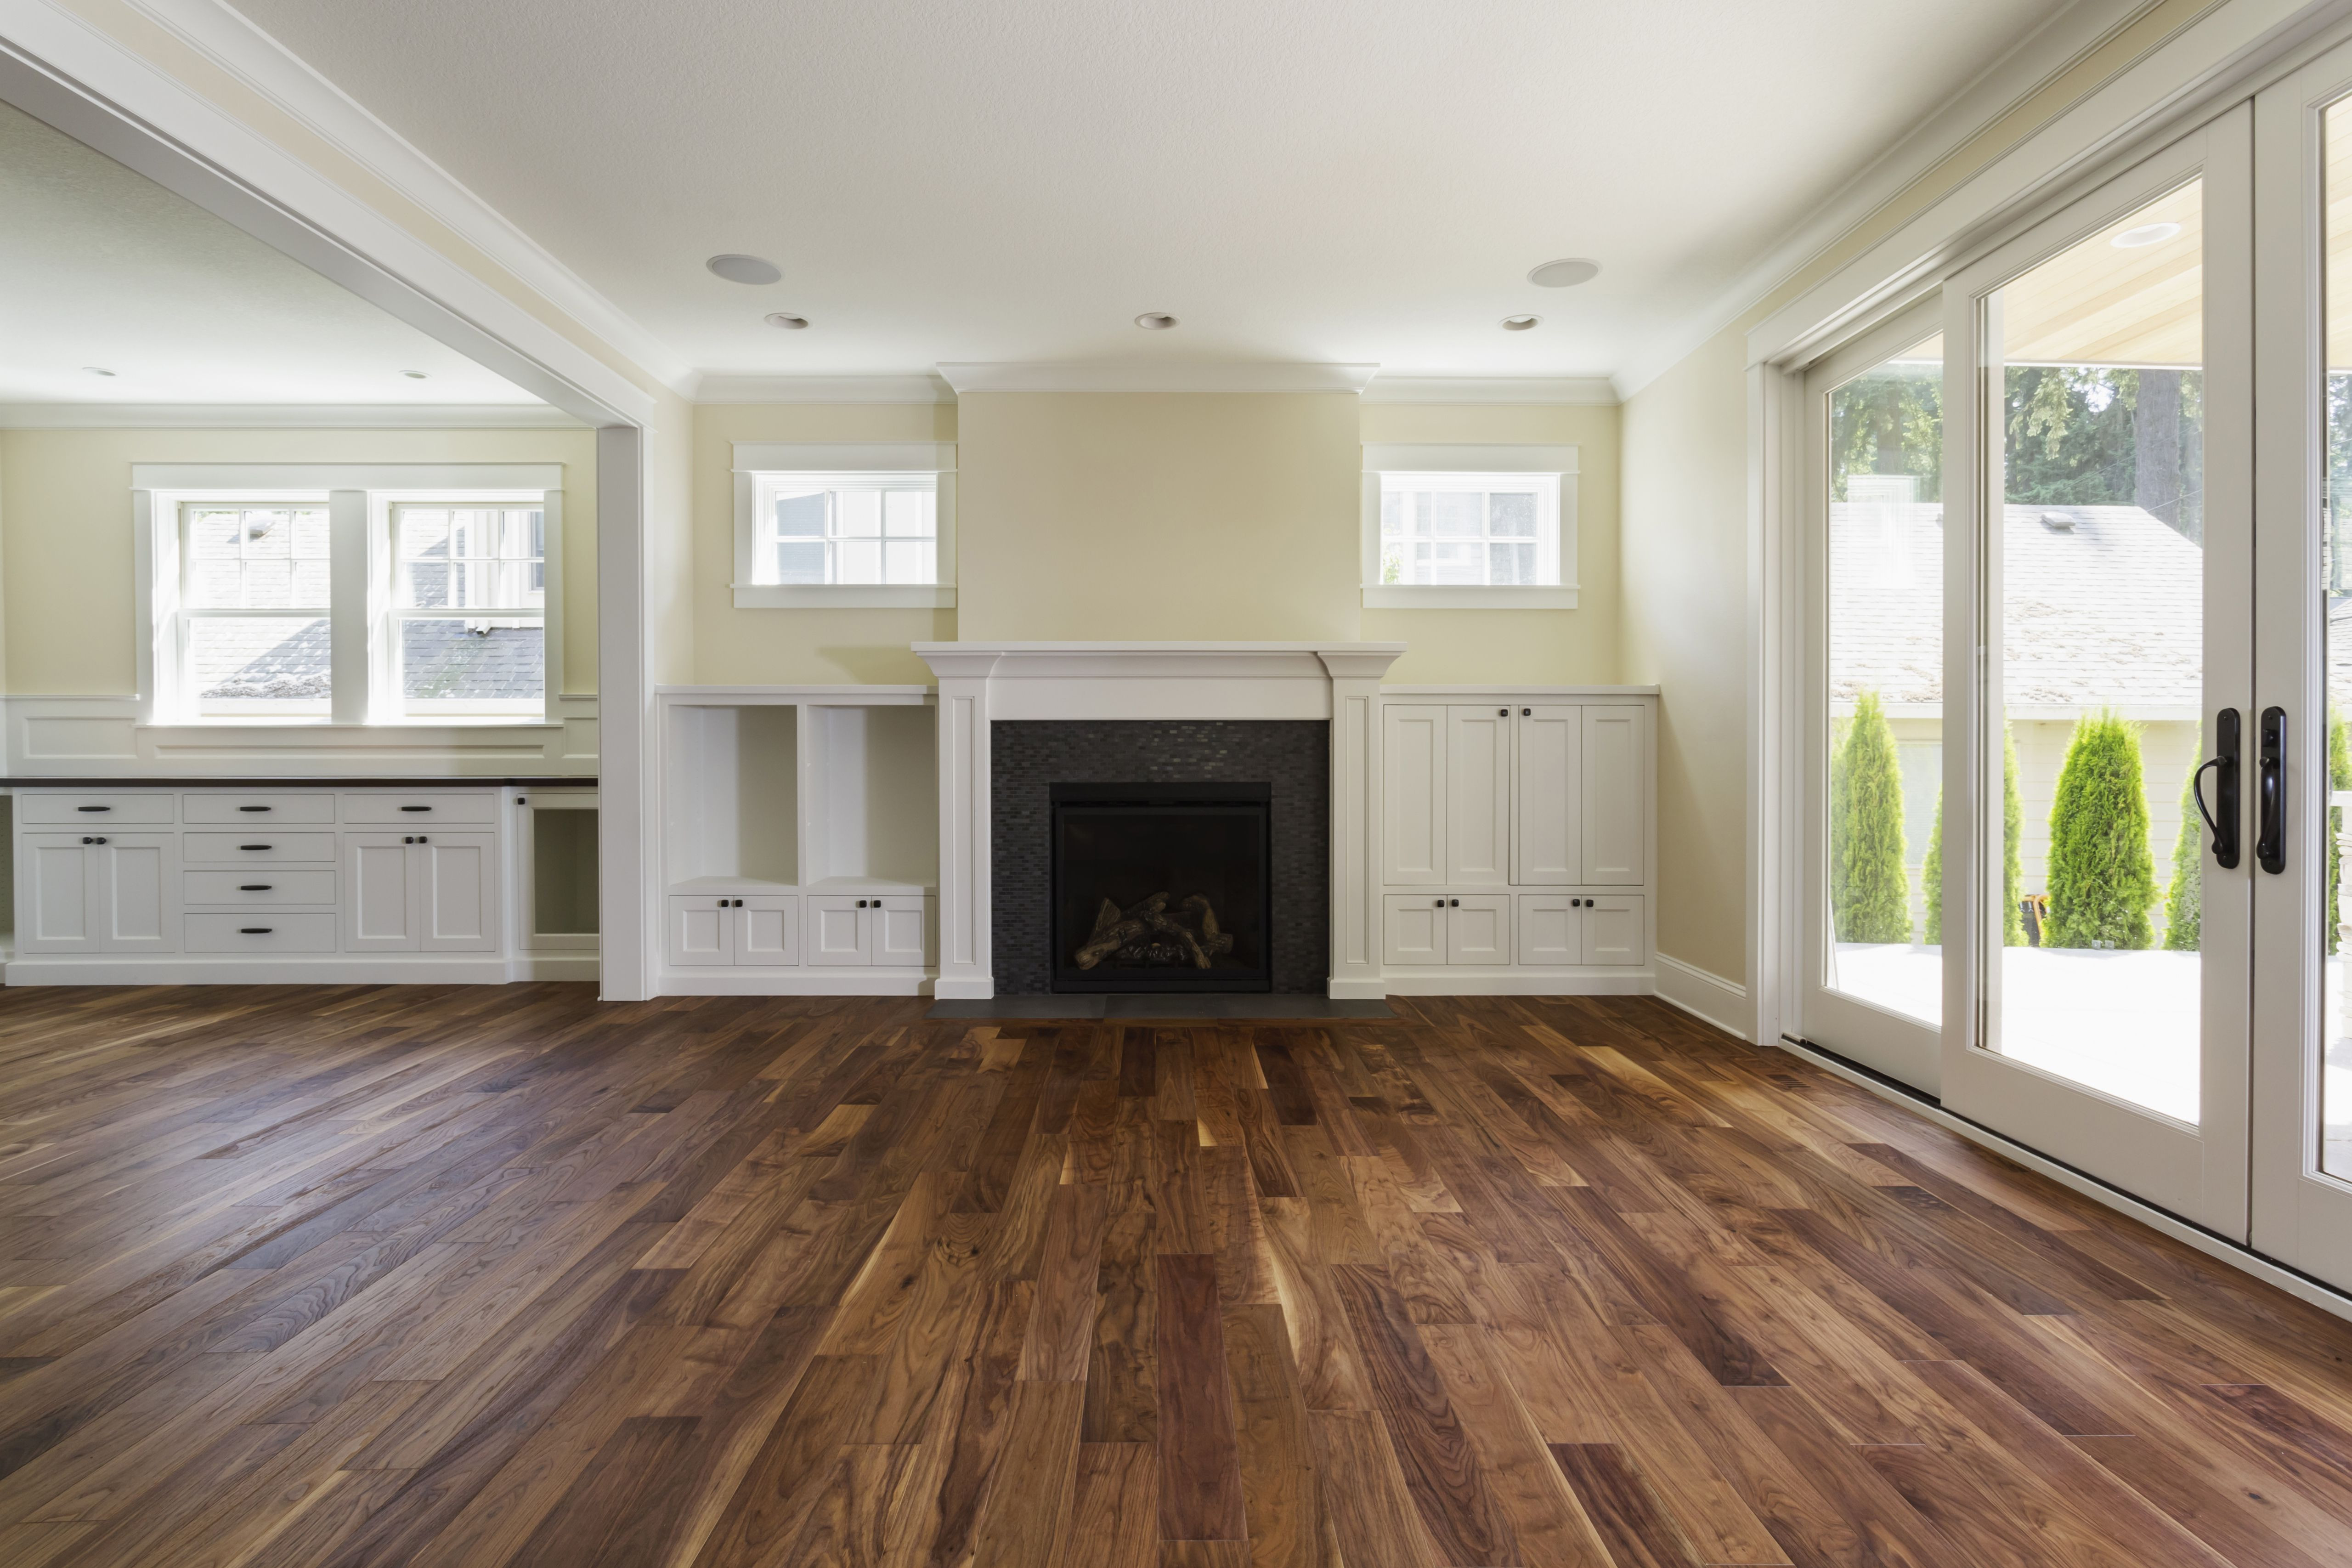 hand scraped hardwood vs engineered flooring of the pros and cons of prefinished hardwood flooring in fireplace and built in shelves in living room 482143011 57bef8e33df78cc16e035397